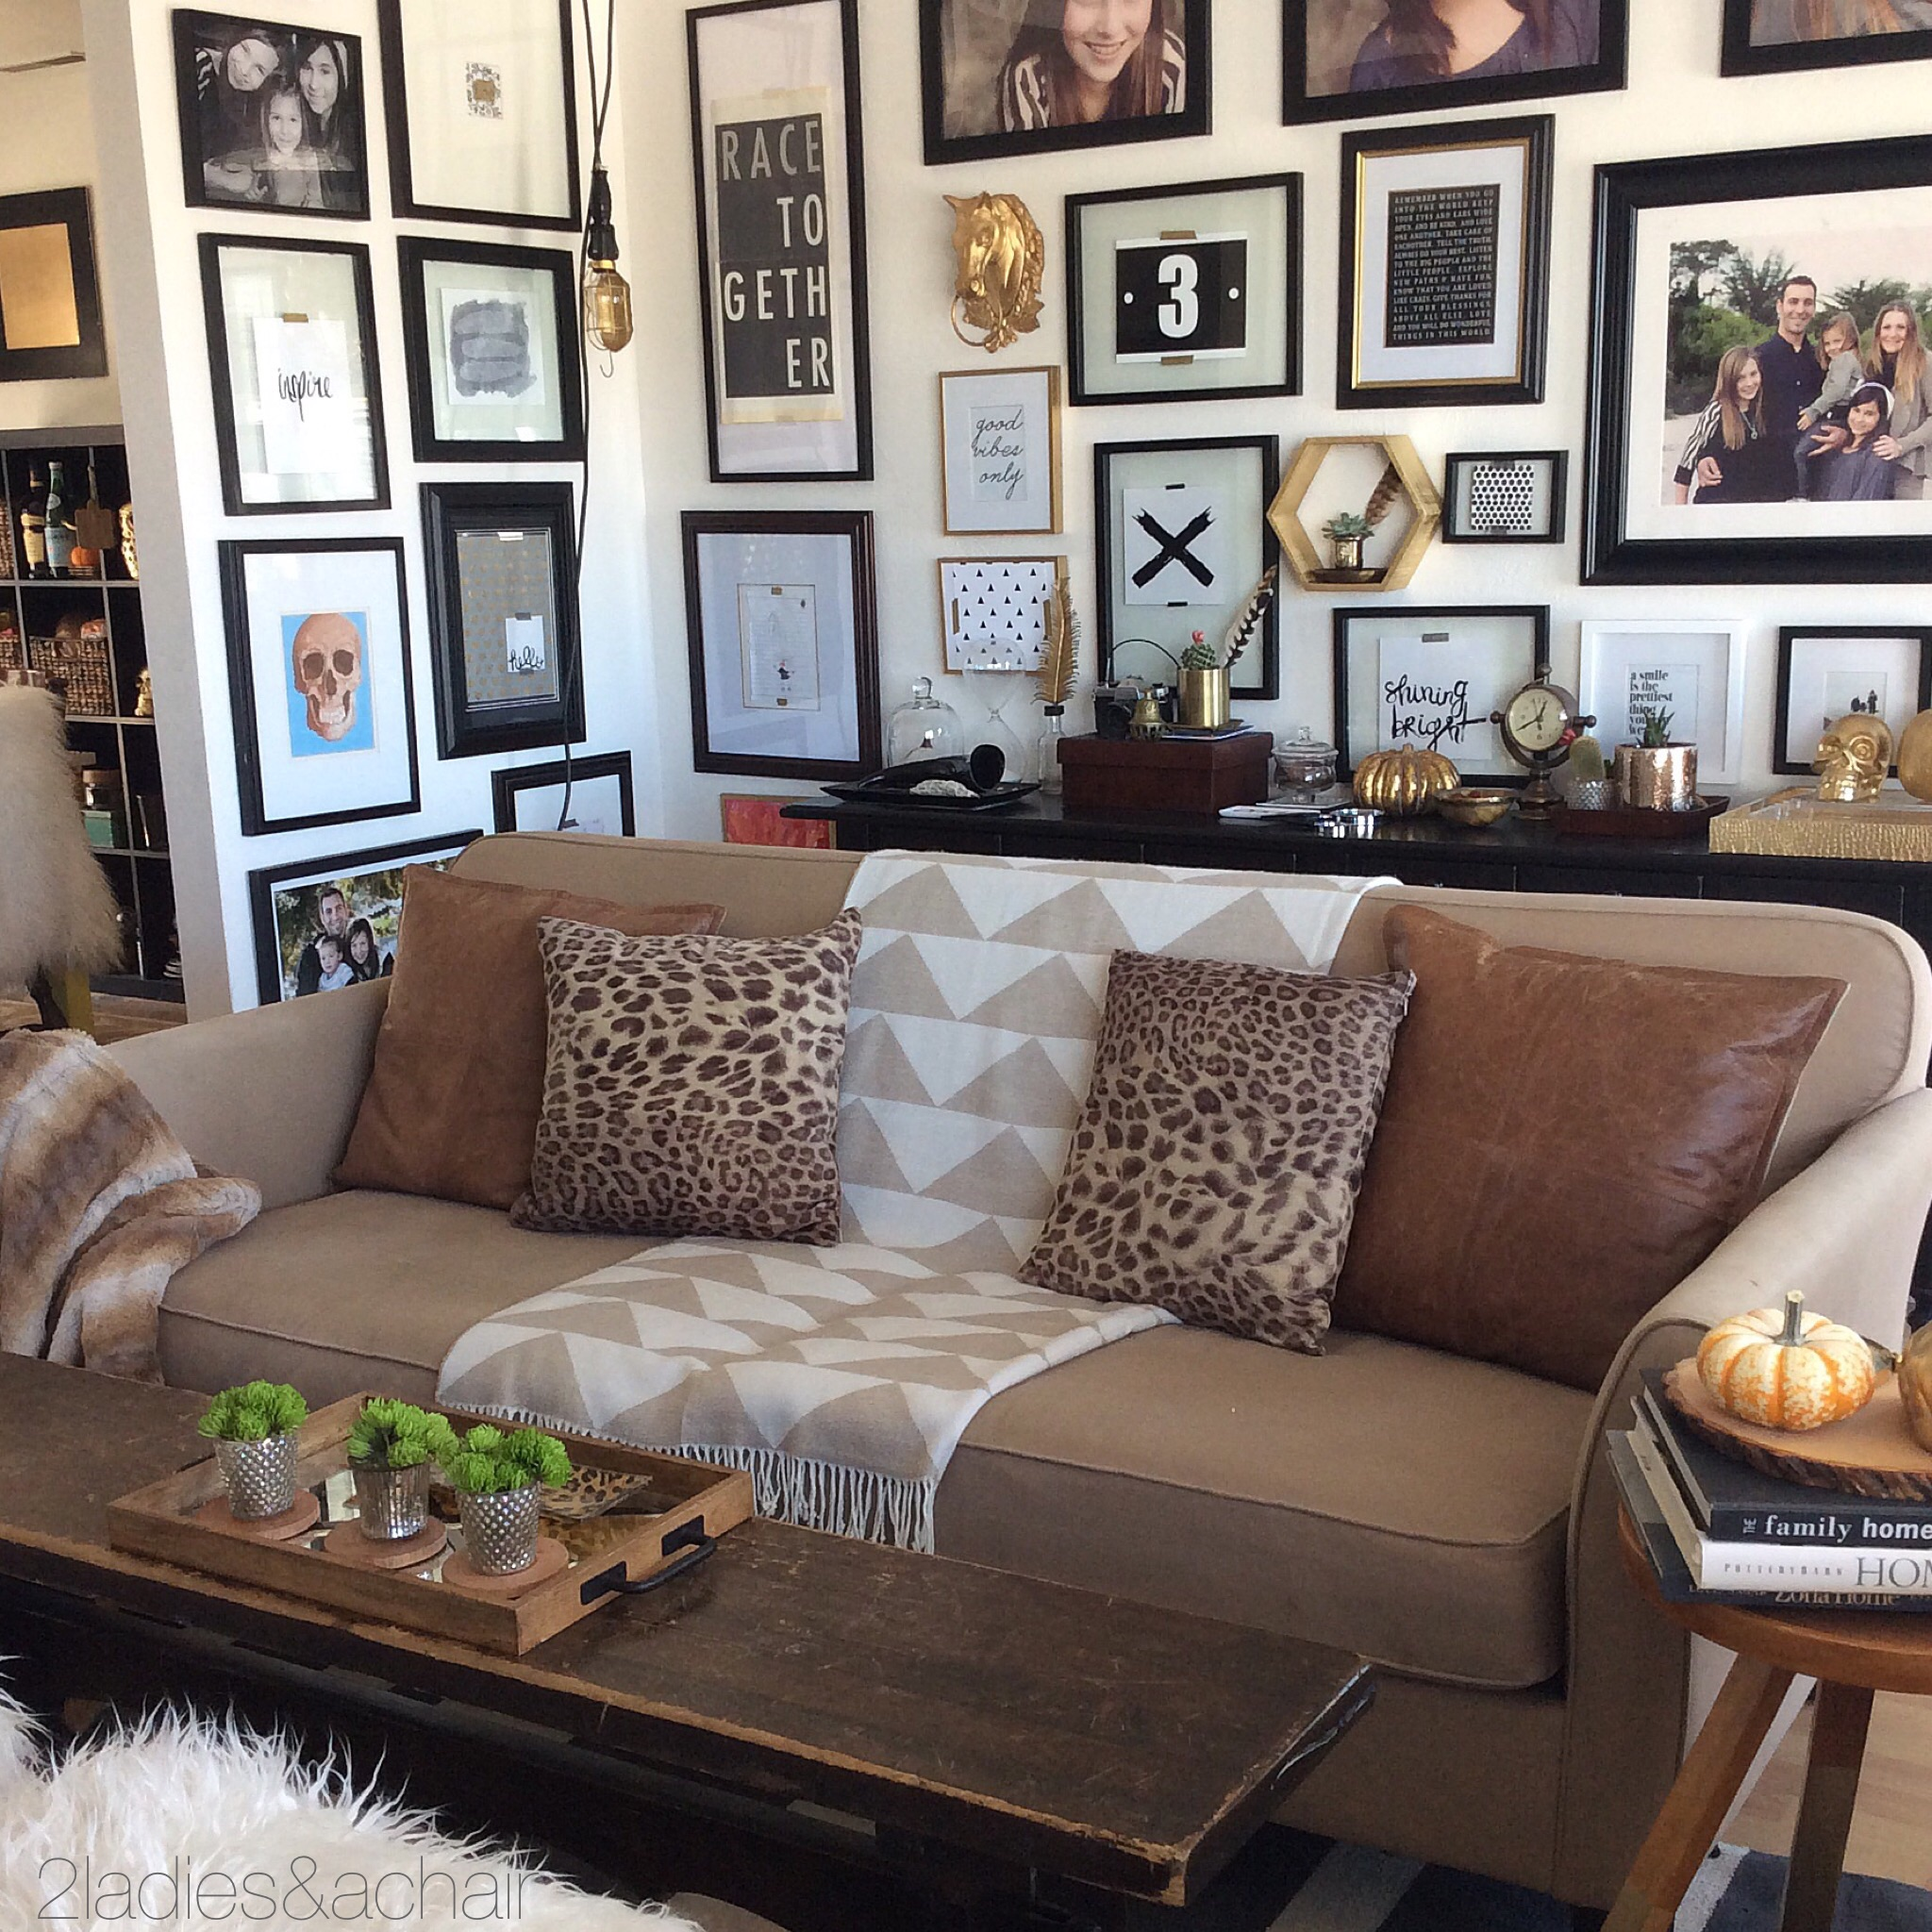 Sofa and Wall Gallery